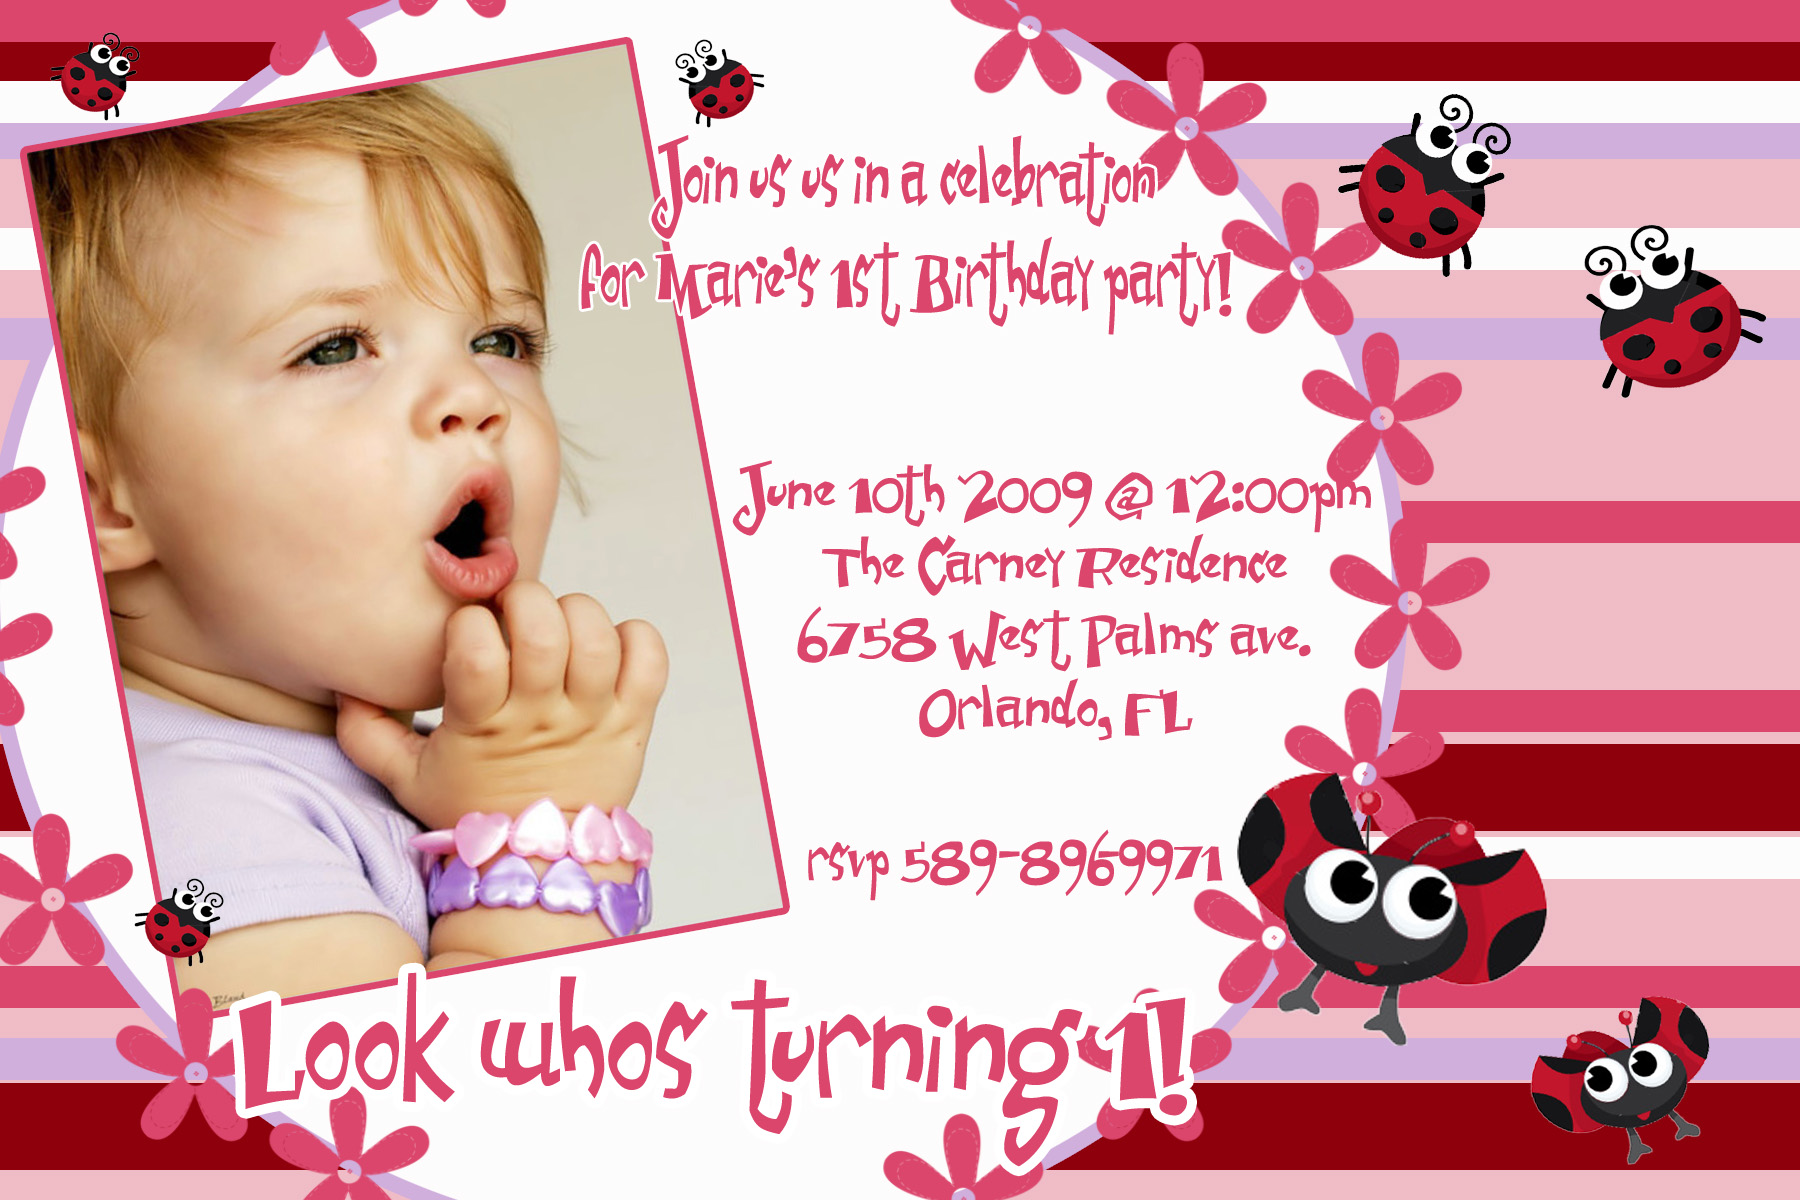 birthday invitation card sample design ; Baby-Birthday-Invitations-combined-with-your-creativity-will-make-this-looks-awesome-1